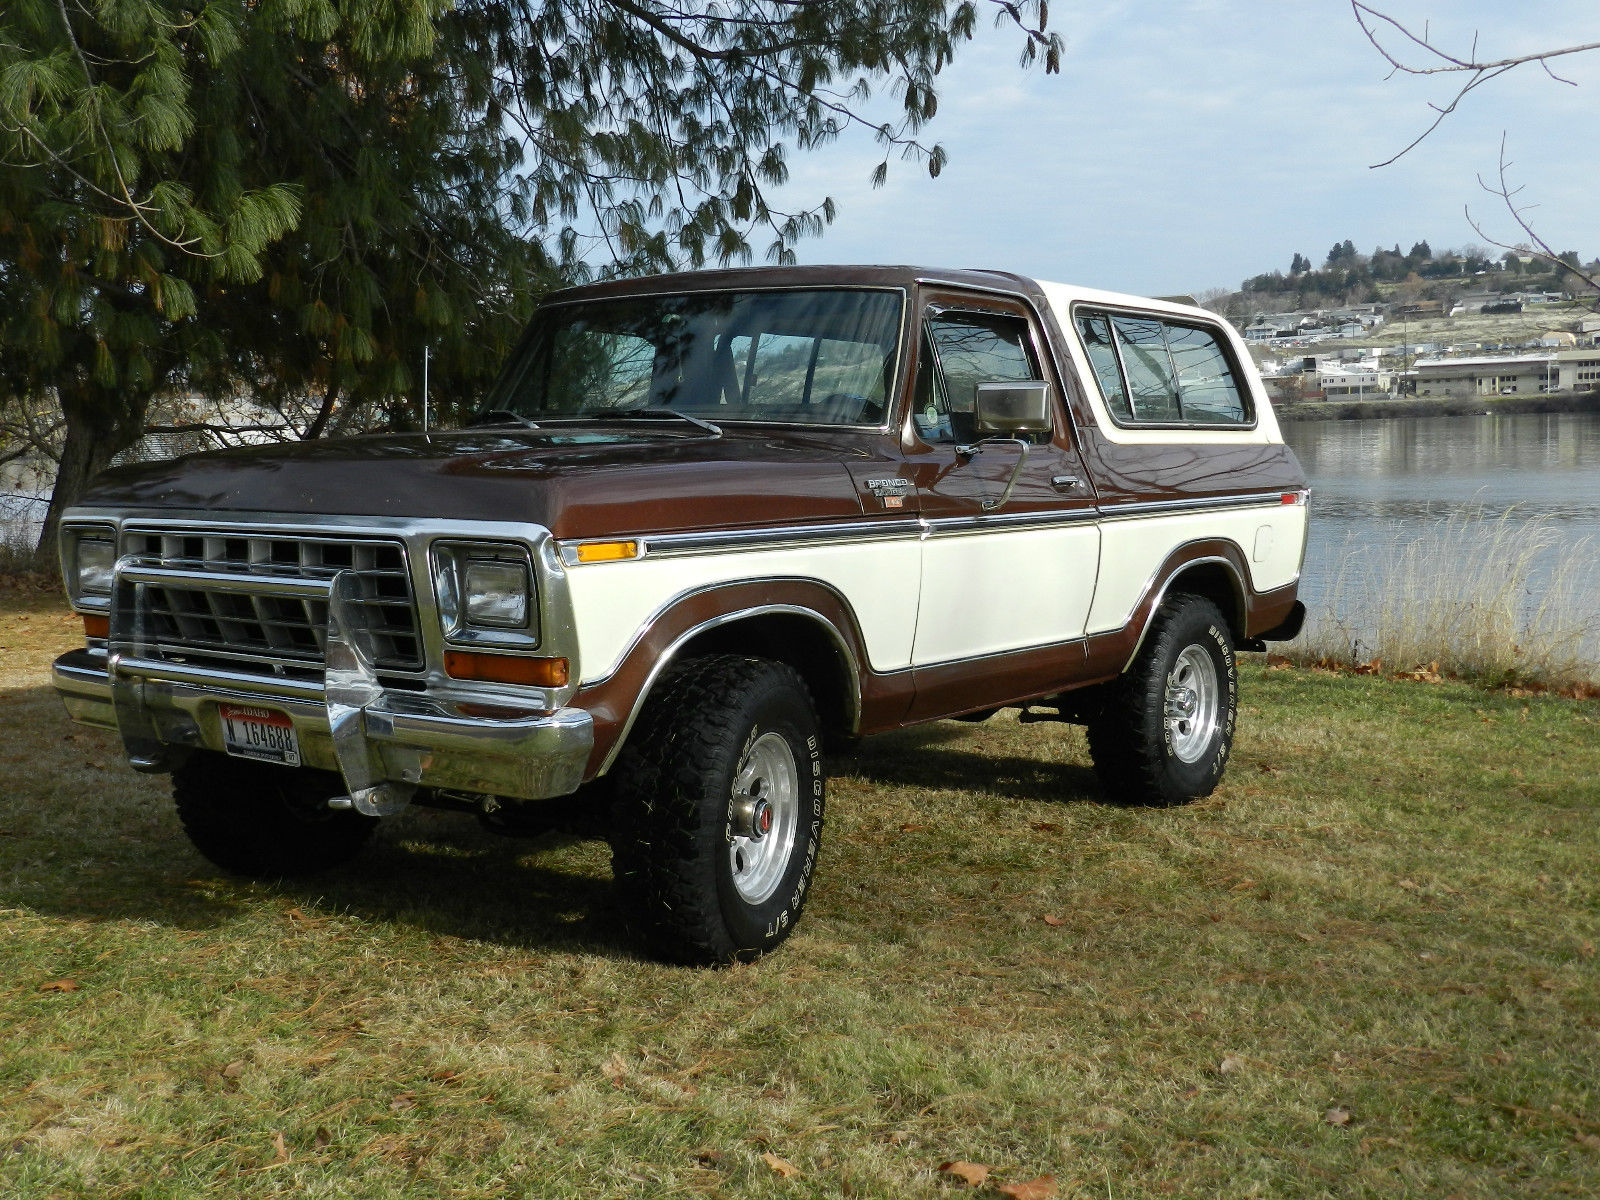 ford f150 bronco split phase motor wiring diagram 1979 4x4 xlt rare orignal paint and body